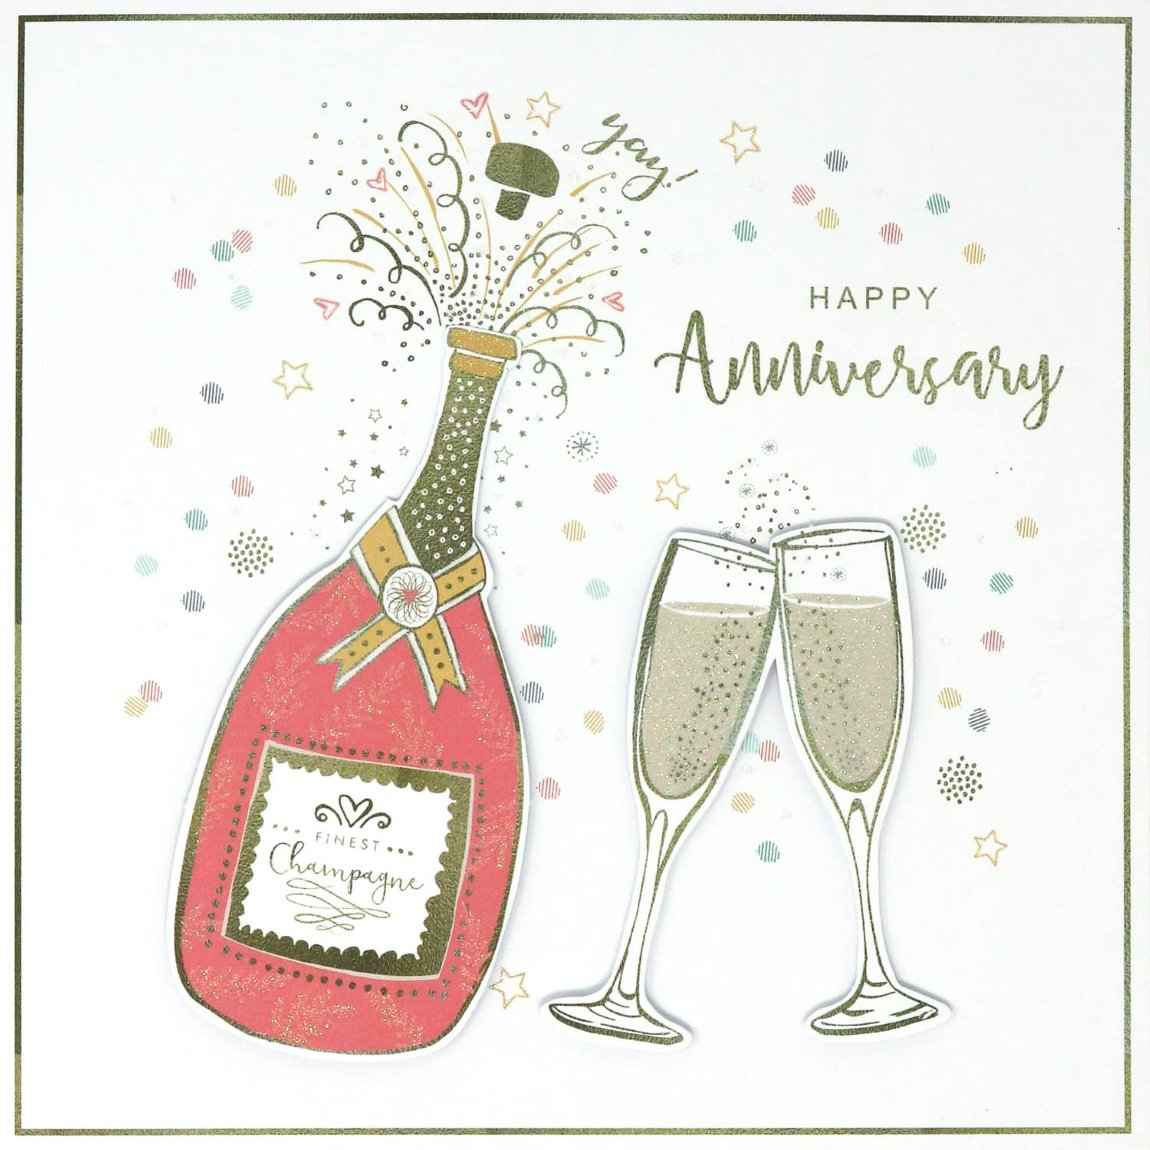 Finest Champagne - Anniversary Card